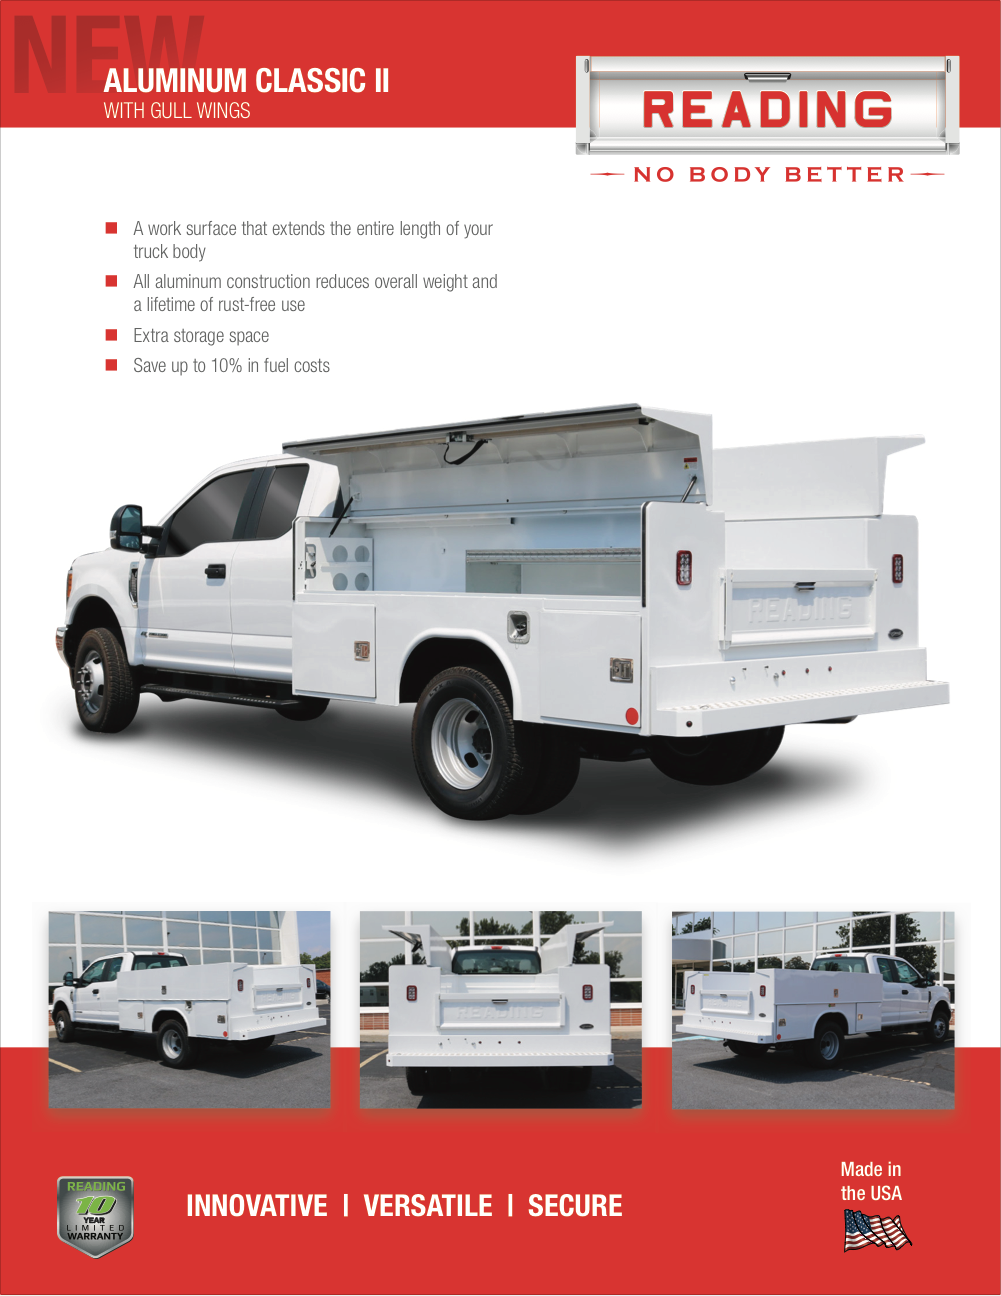 Aluminum Classic II Service Body with Gull Wing Doors Product Literature